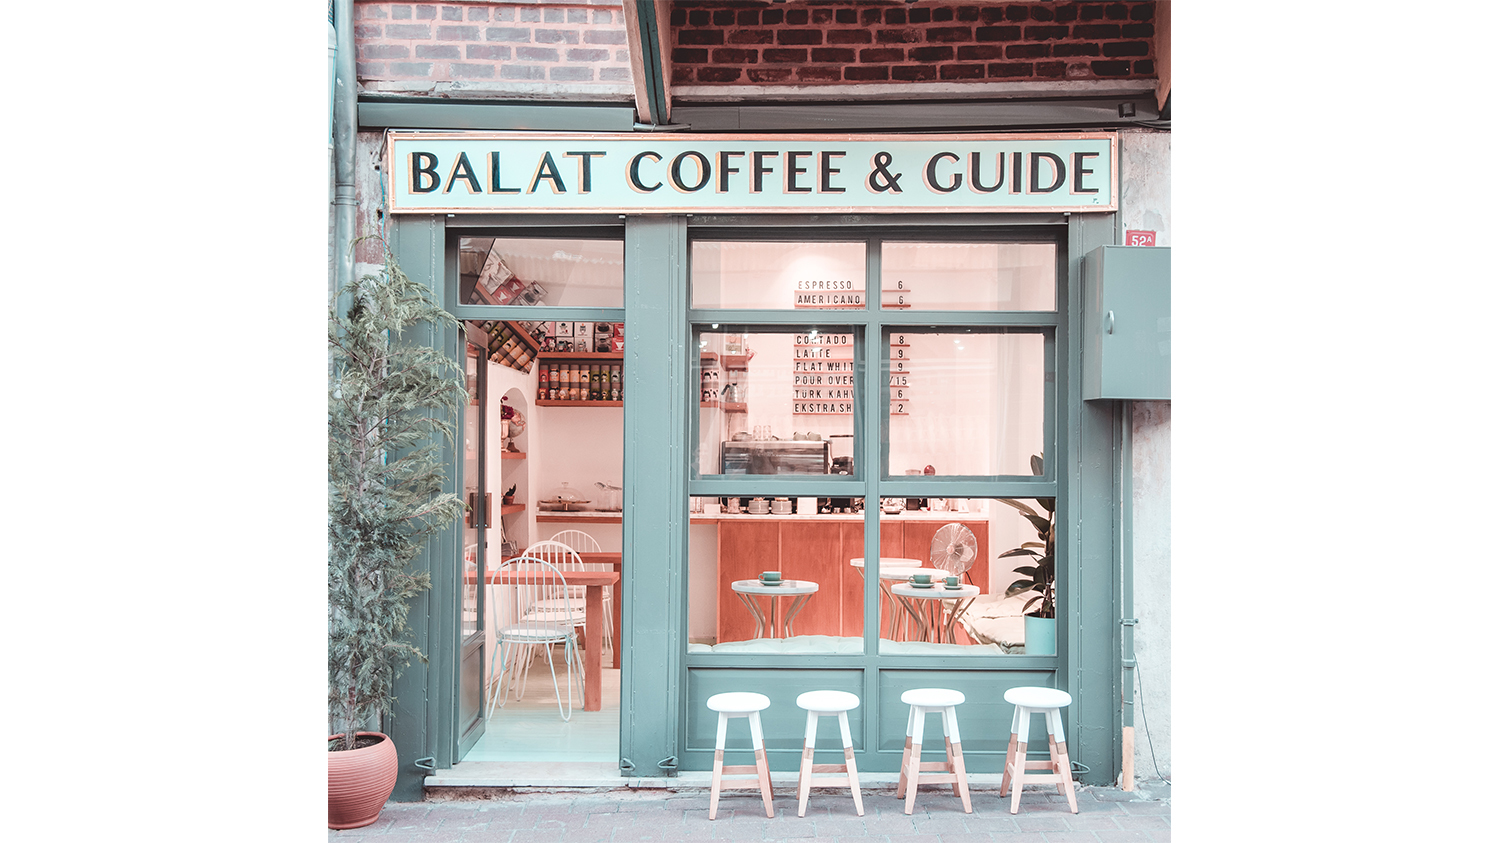 Balat Coffee & Guide